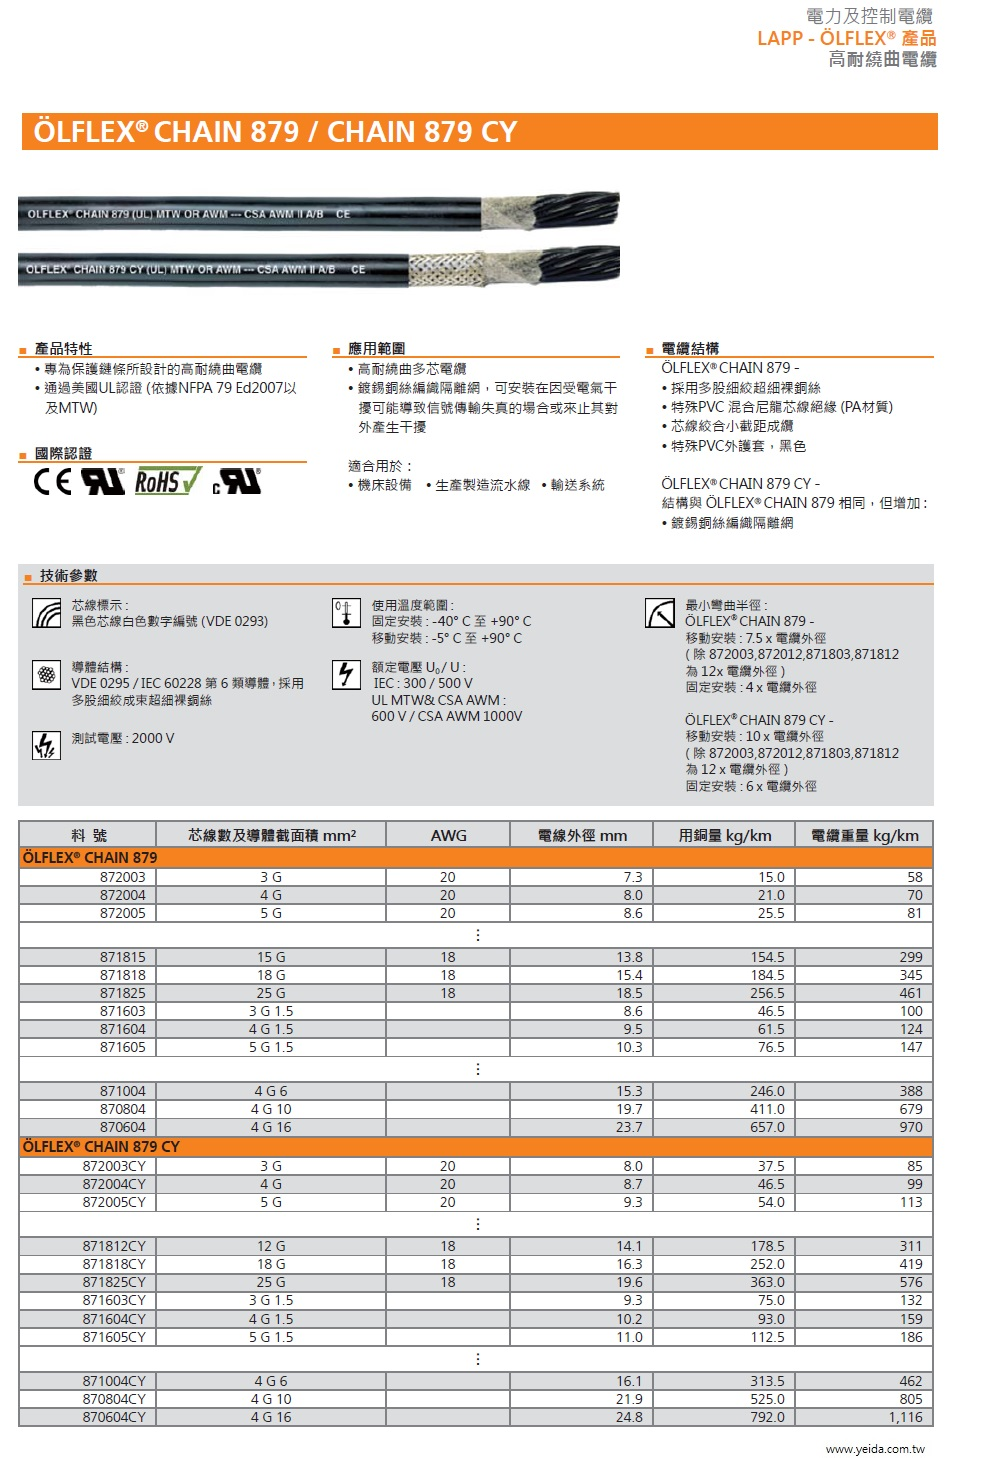 LAPP- OLFLEX®  CHAIN 879 工業級(超柔移動式防污油)連接線PVC insulated, numbered, PVC sheath, approved產品圖